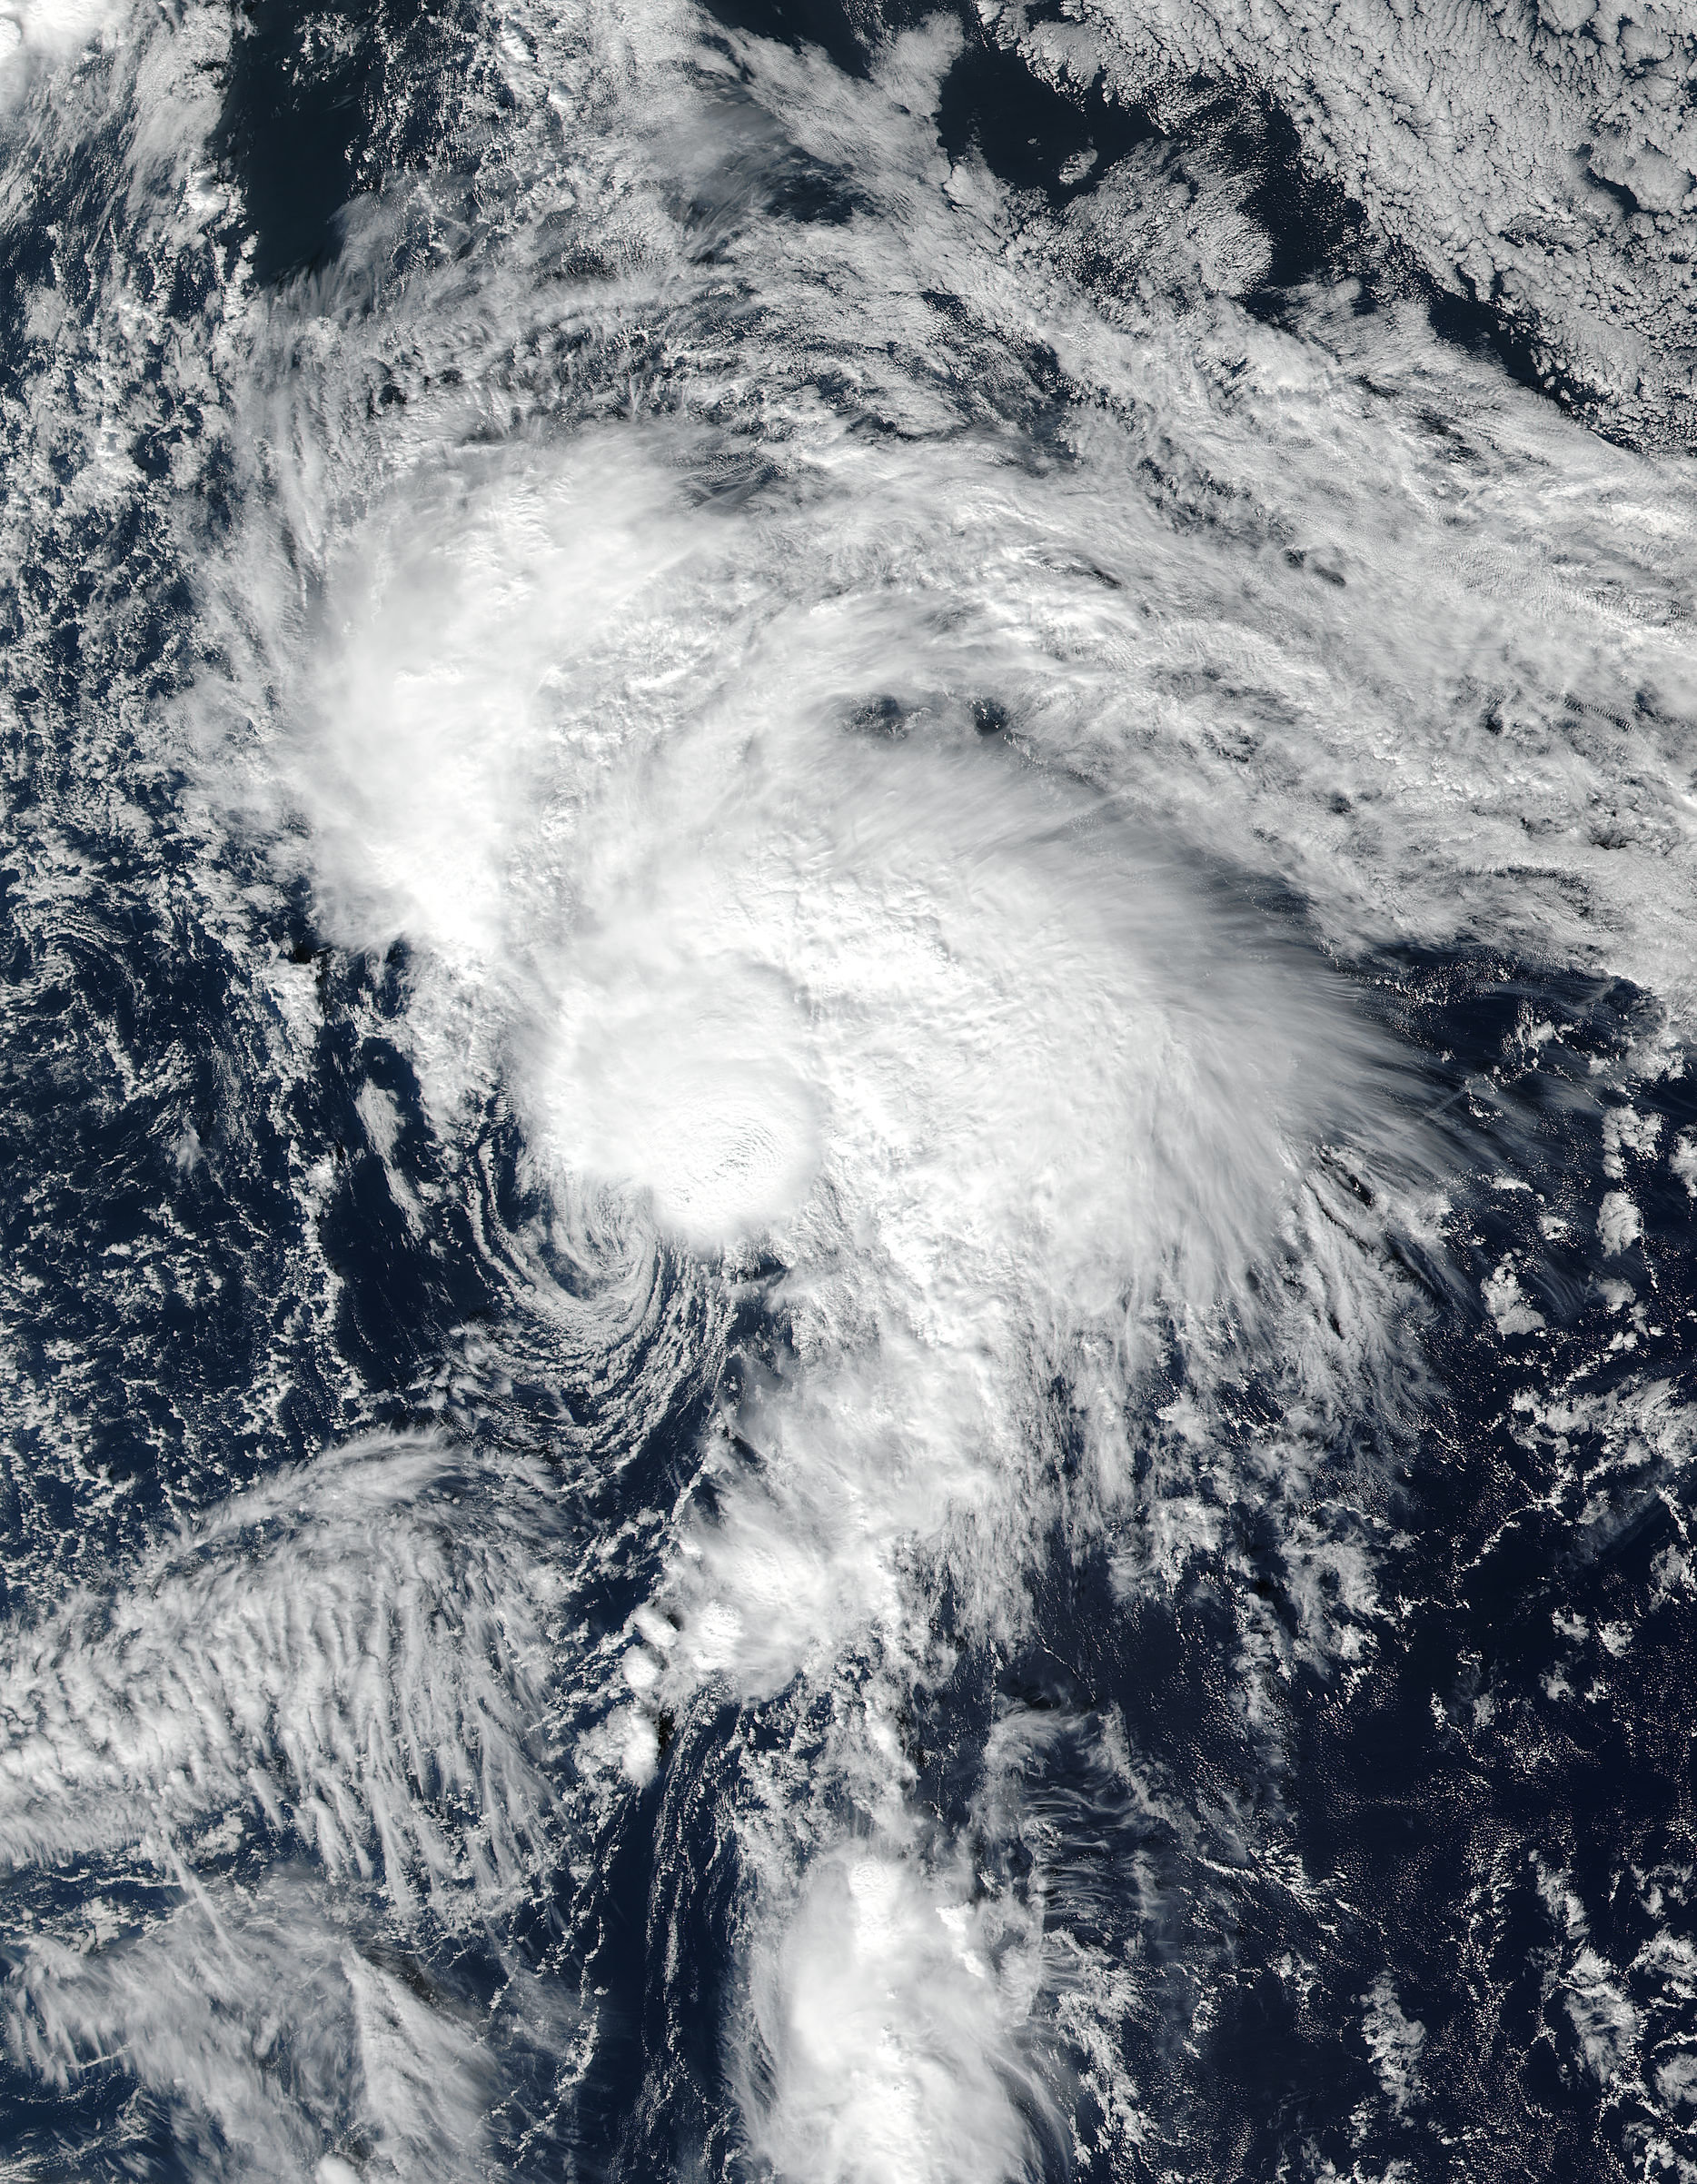 A magnified comma-shaped cloud that is a common sign for a cyclone or other violent weather storm